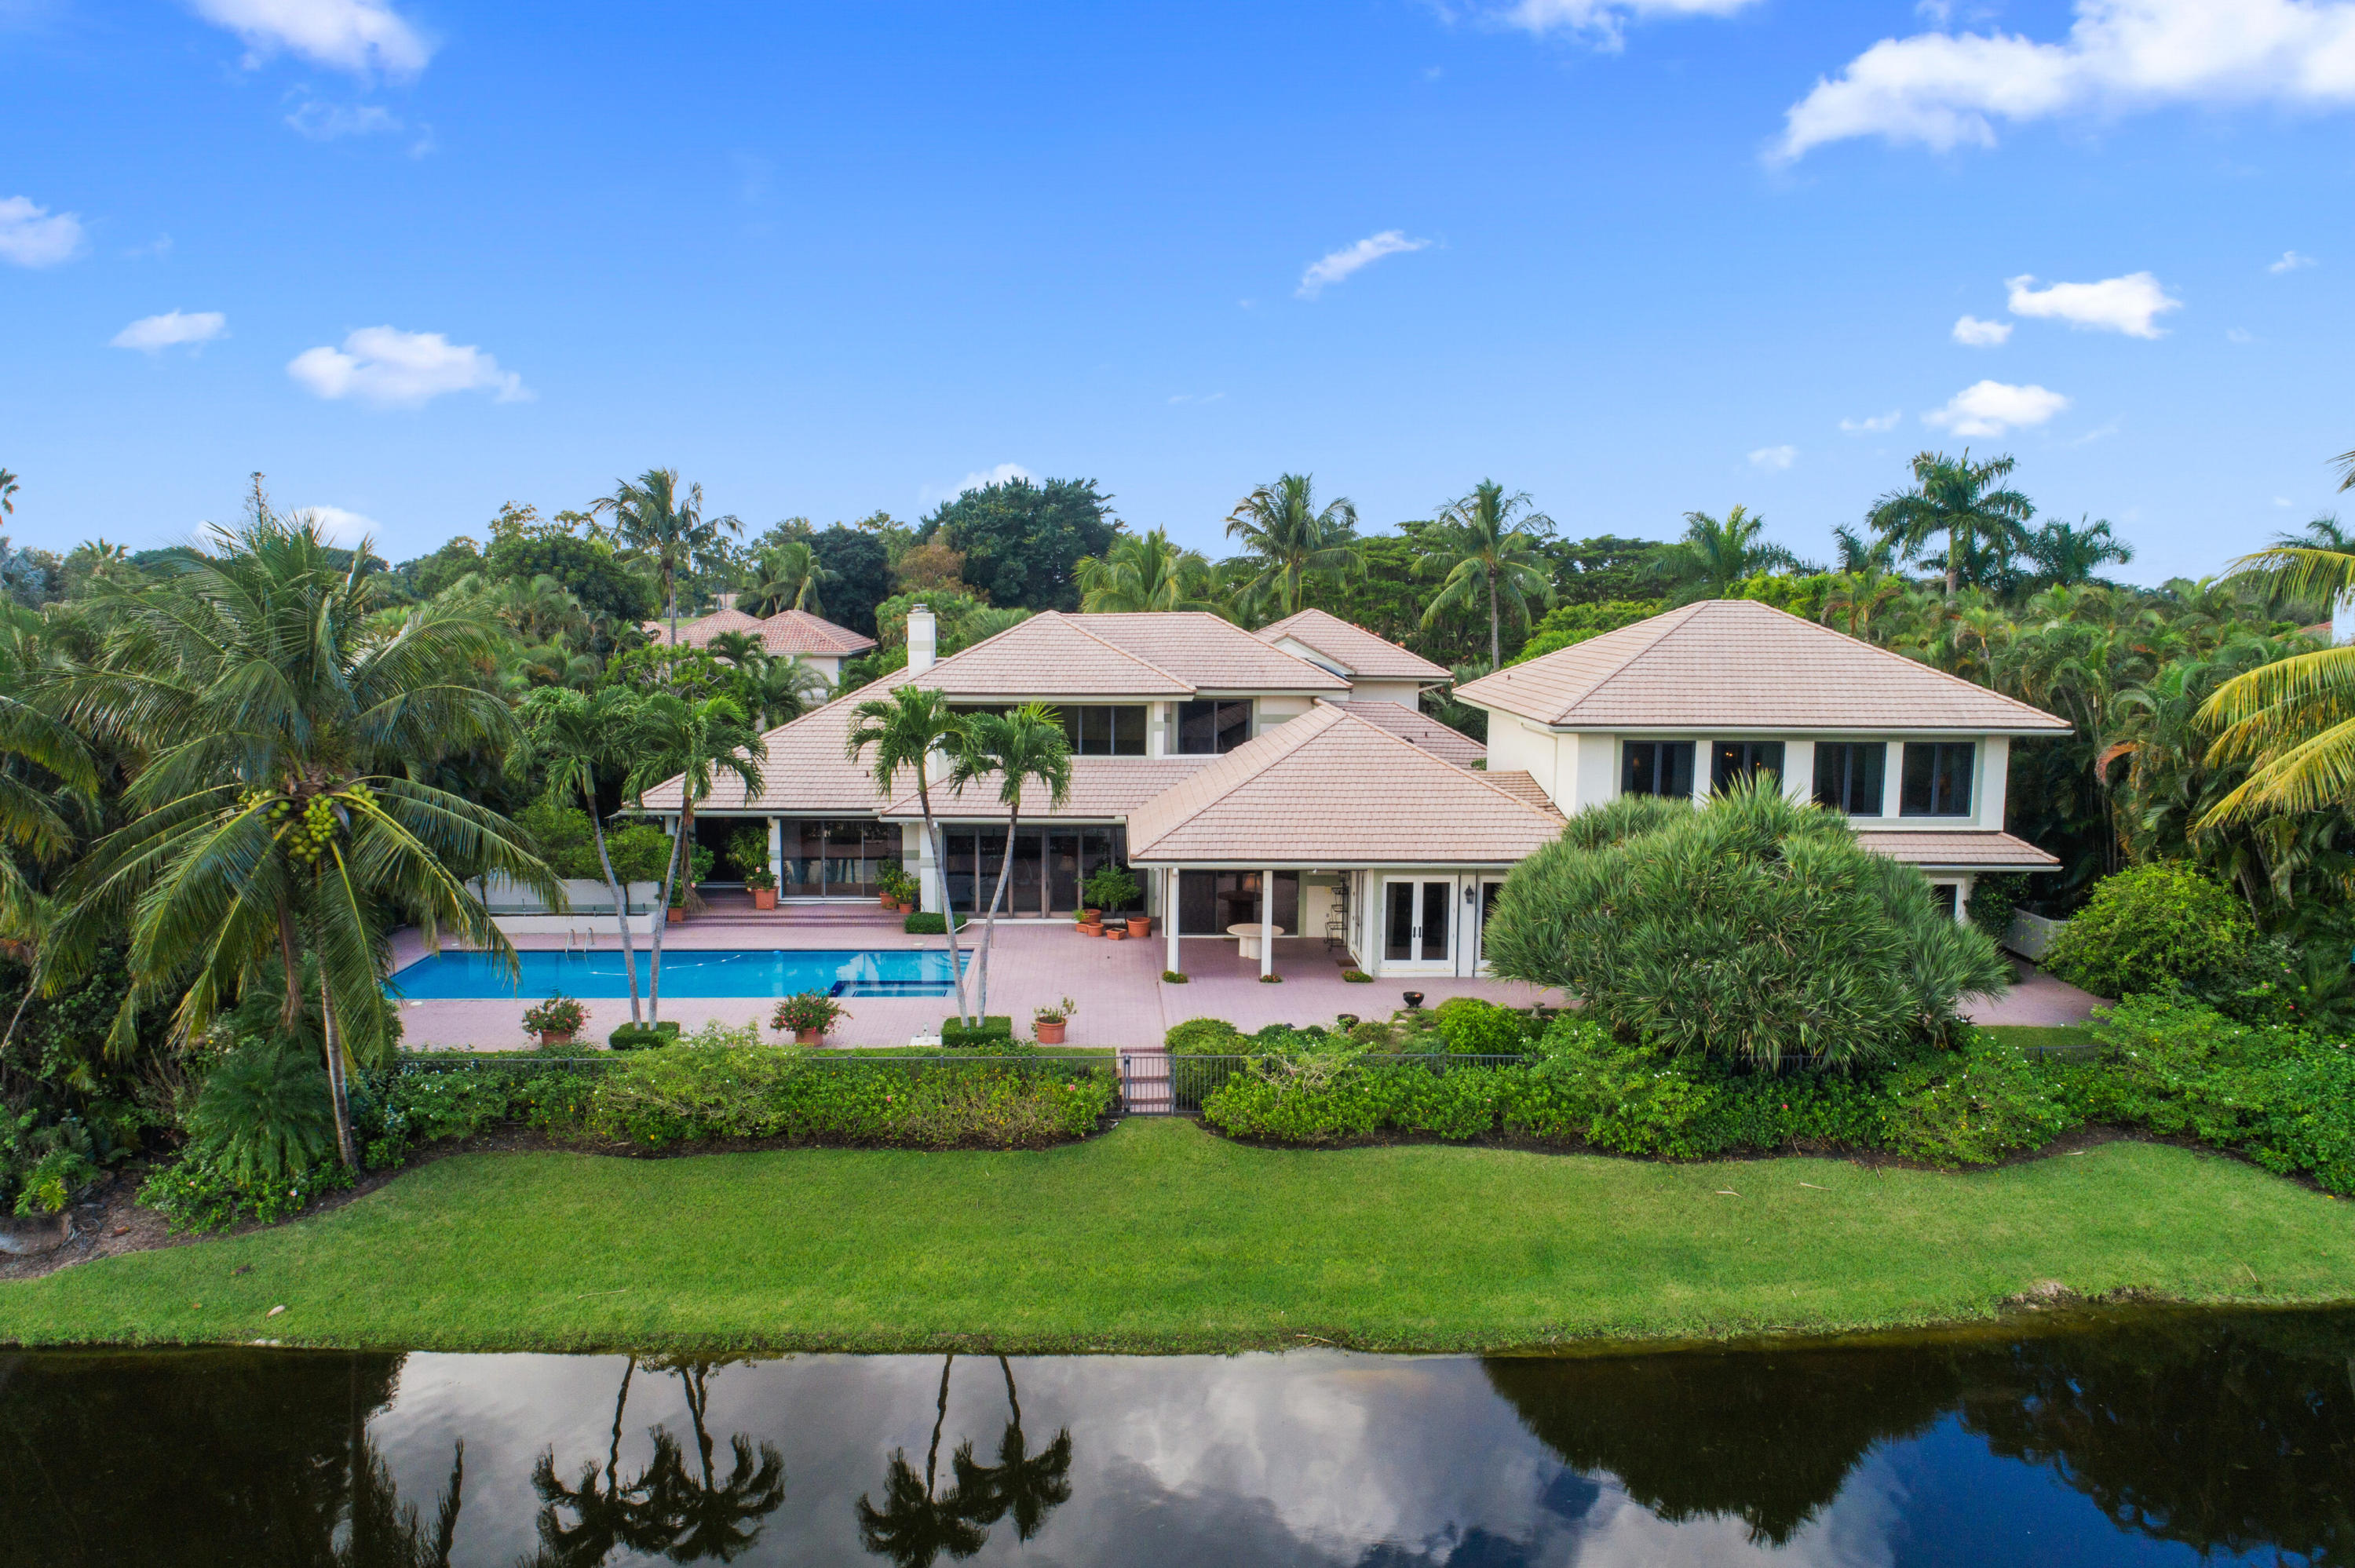 Home for sale in MAIDSTONE Wellington Florida